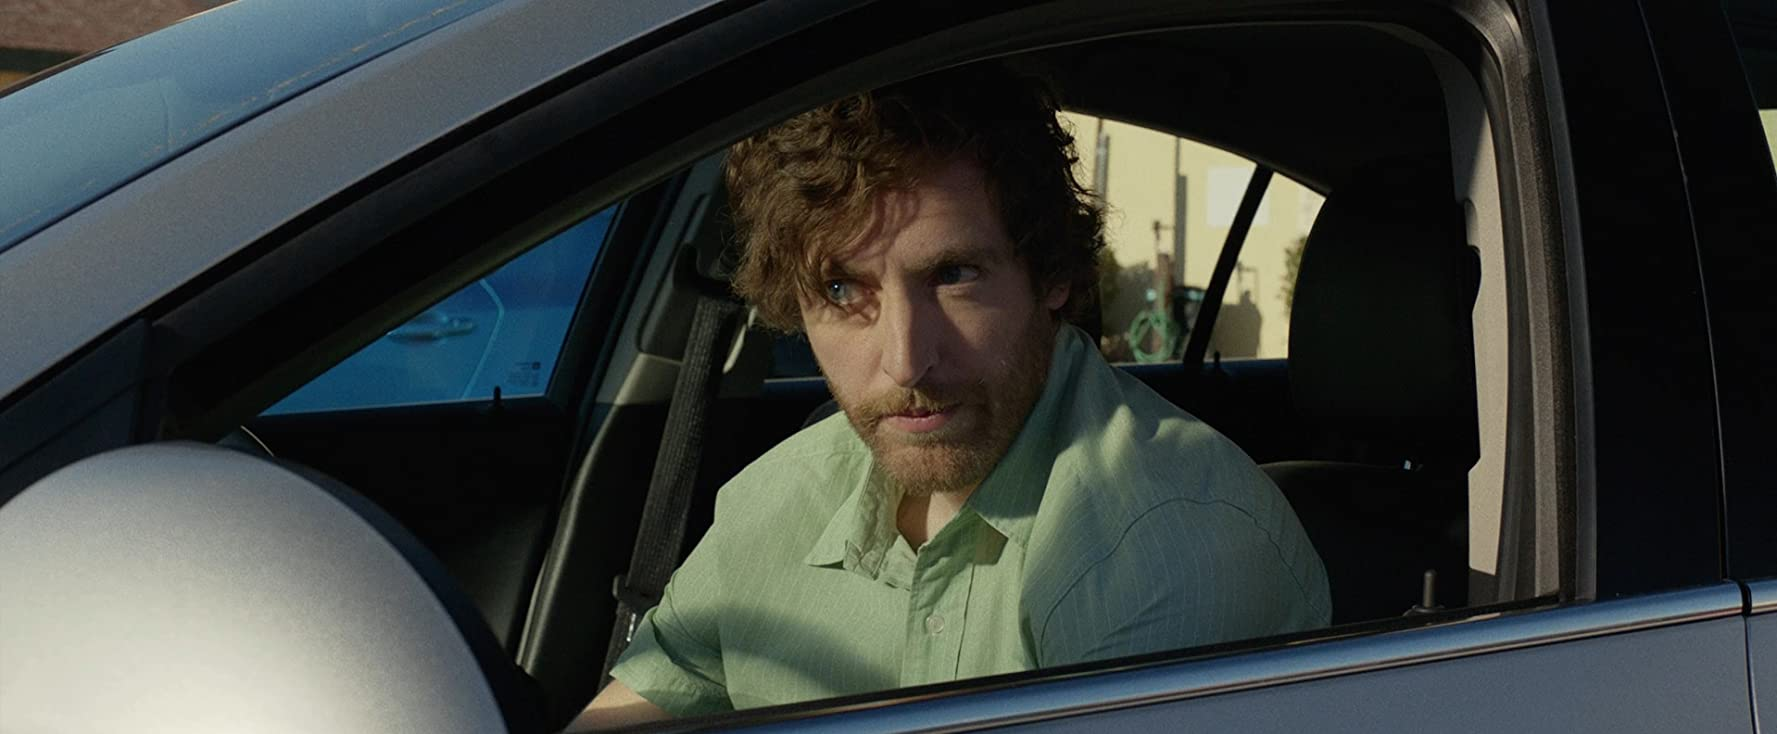 Thomas Middleditch in Once Upon a Time in Venice (2017)